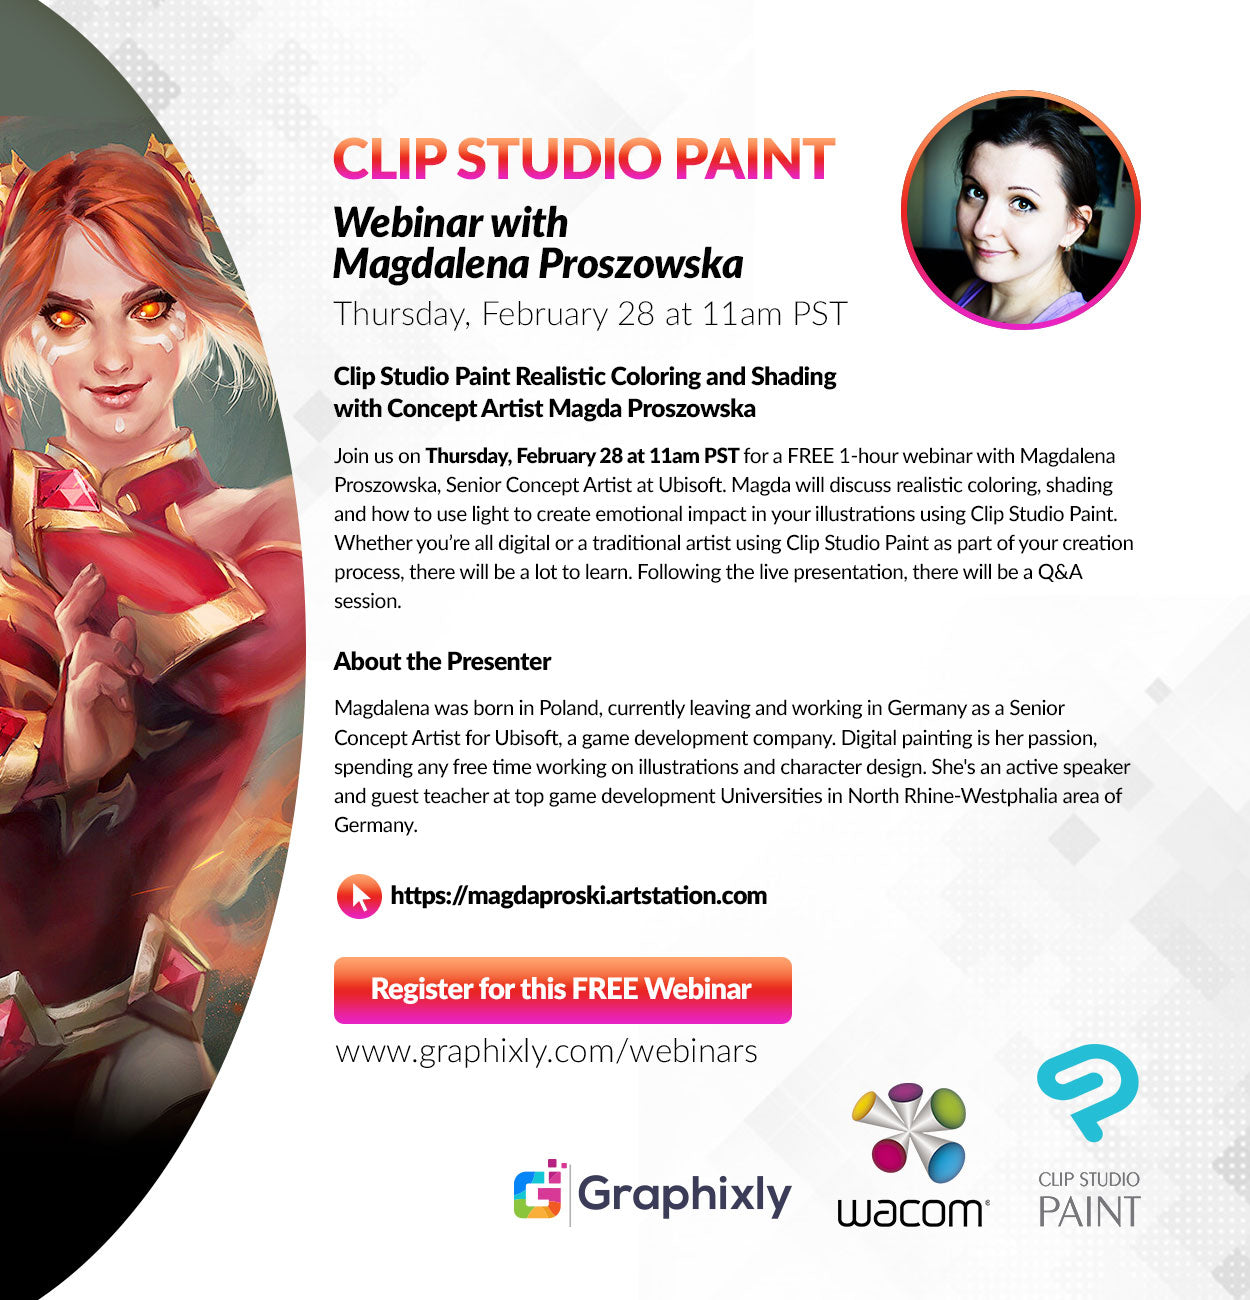 Webinar - Clip Studio Paint Realistic Coloring and Shading with Concept Artist Magda Proszowska